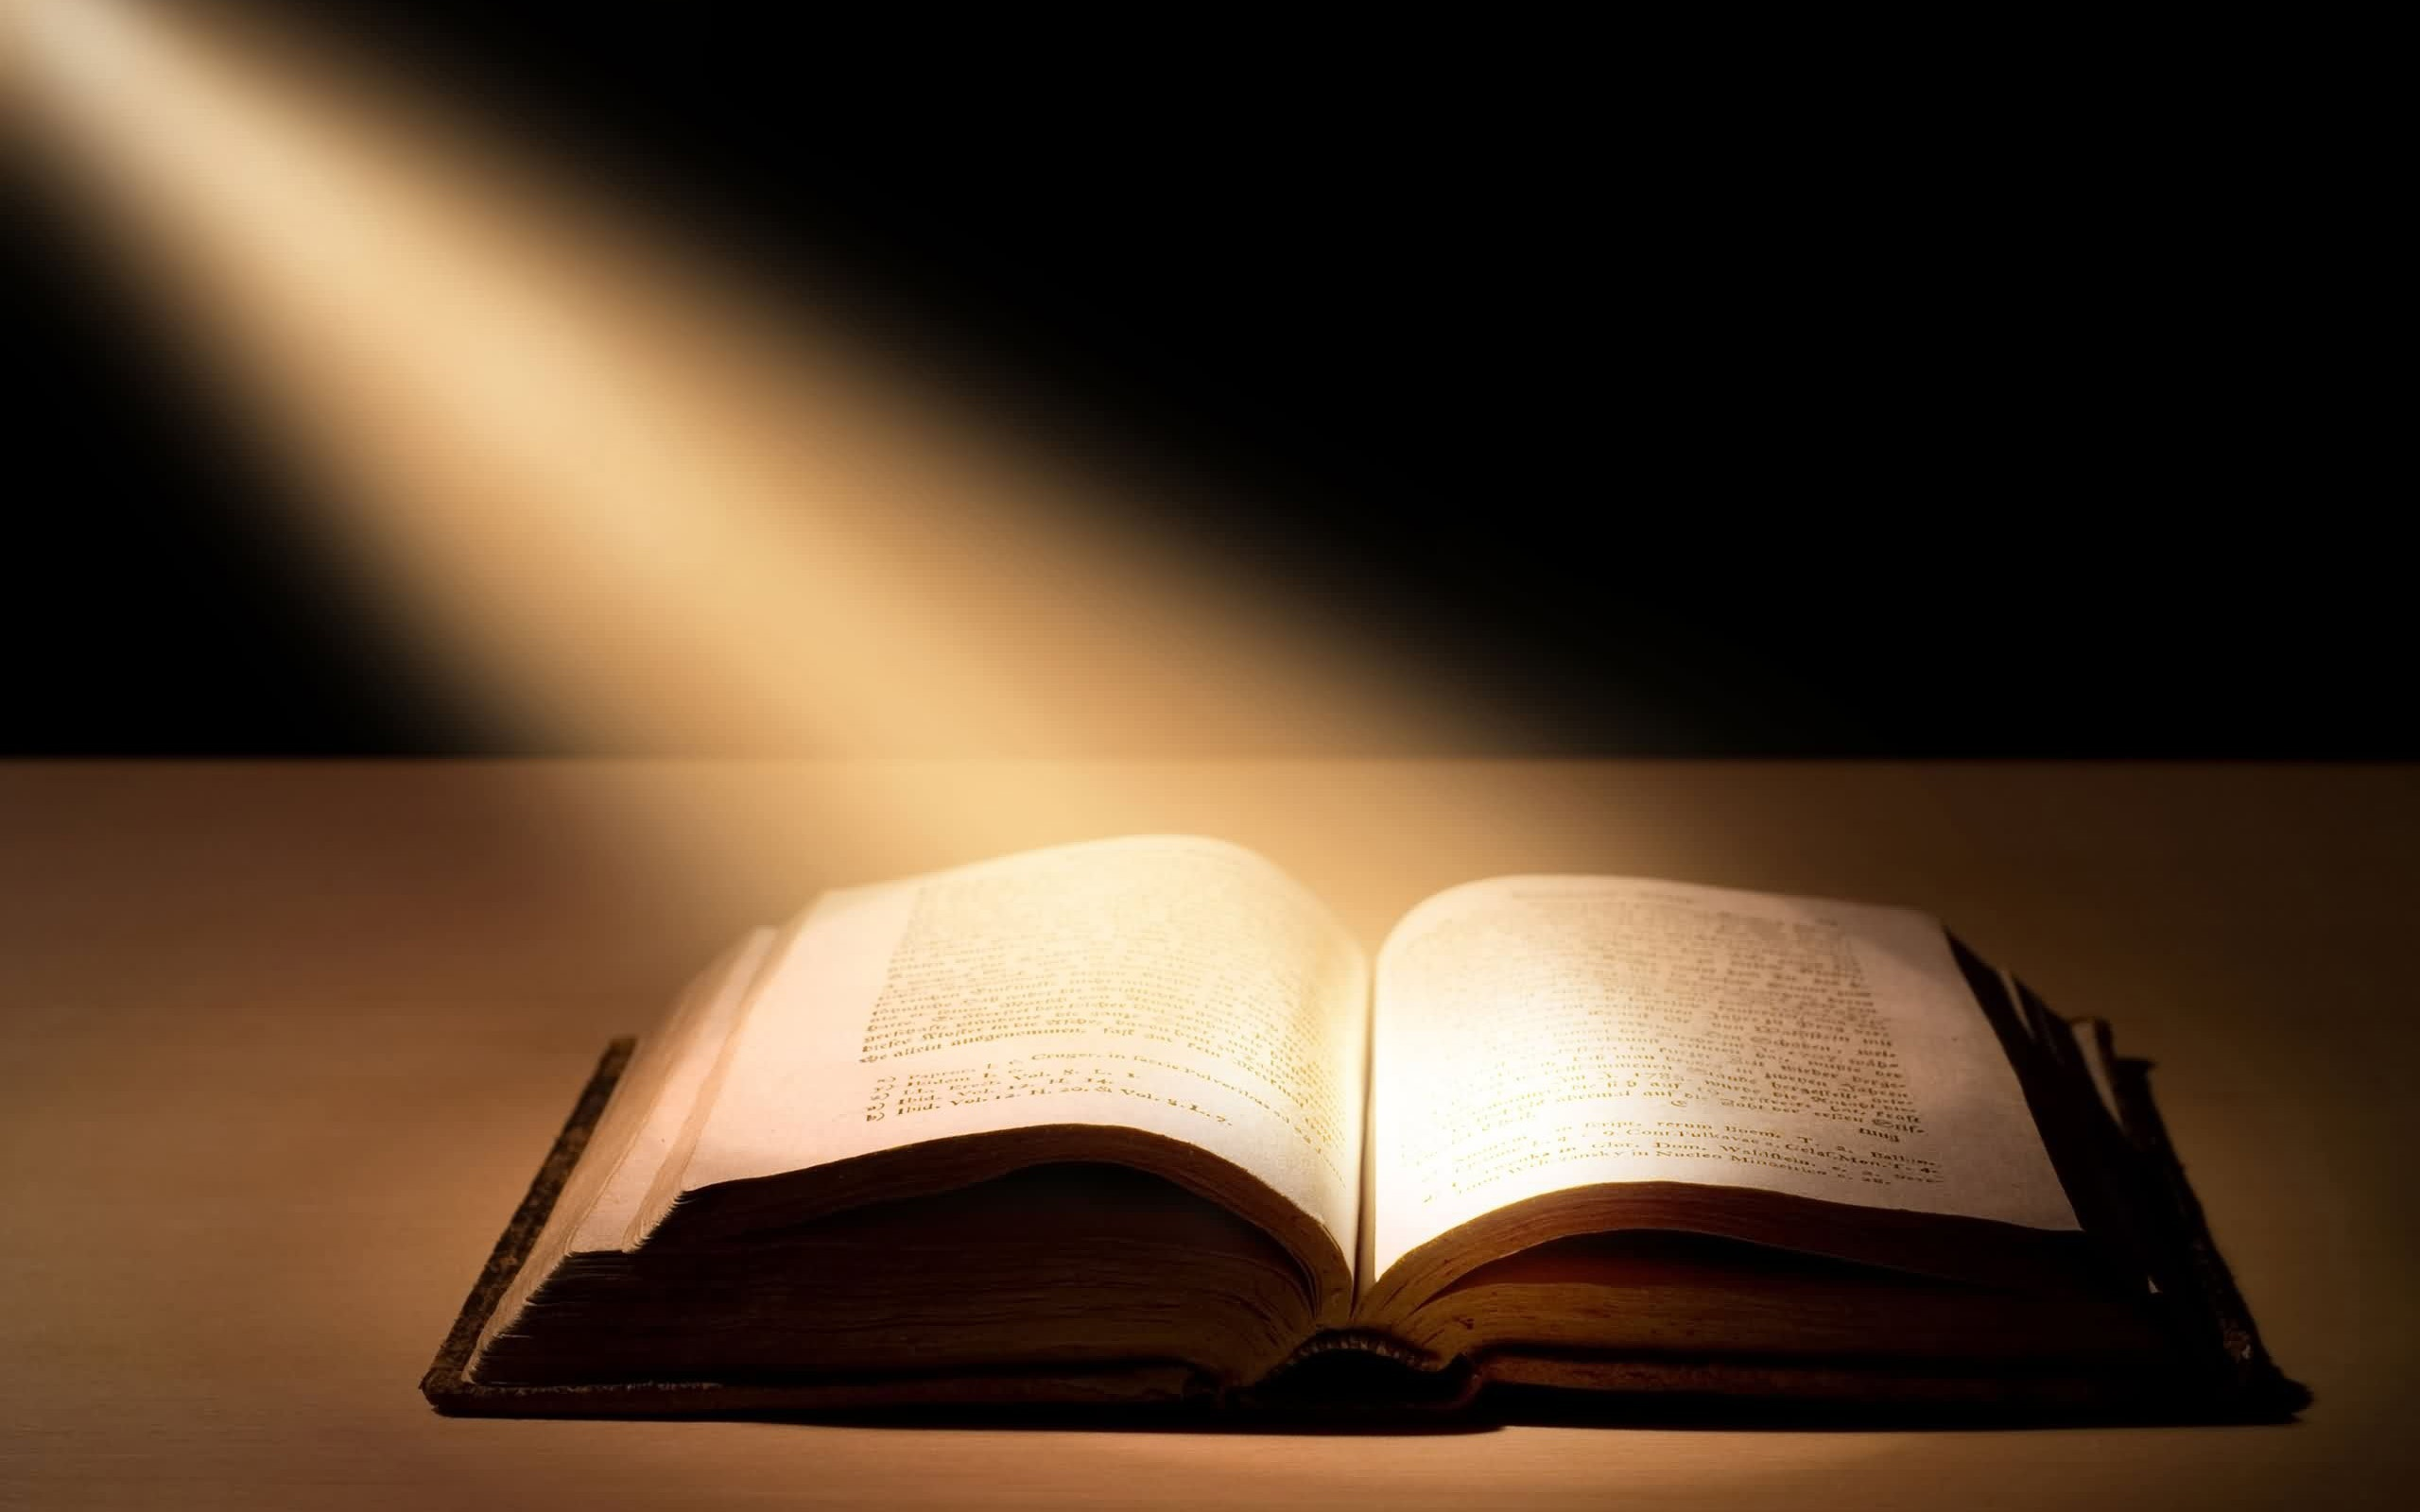 Bible in Spotlight Picture 973.92 Kb